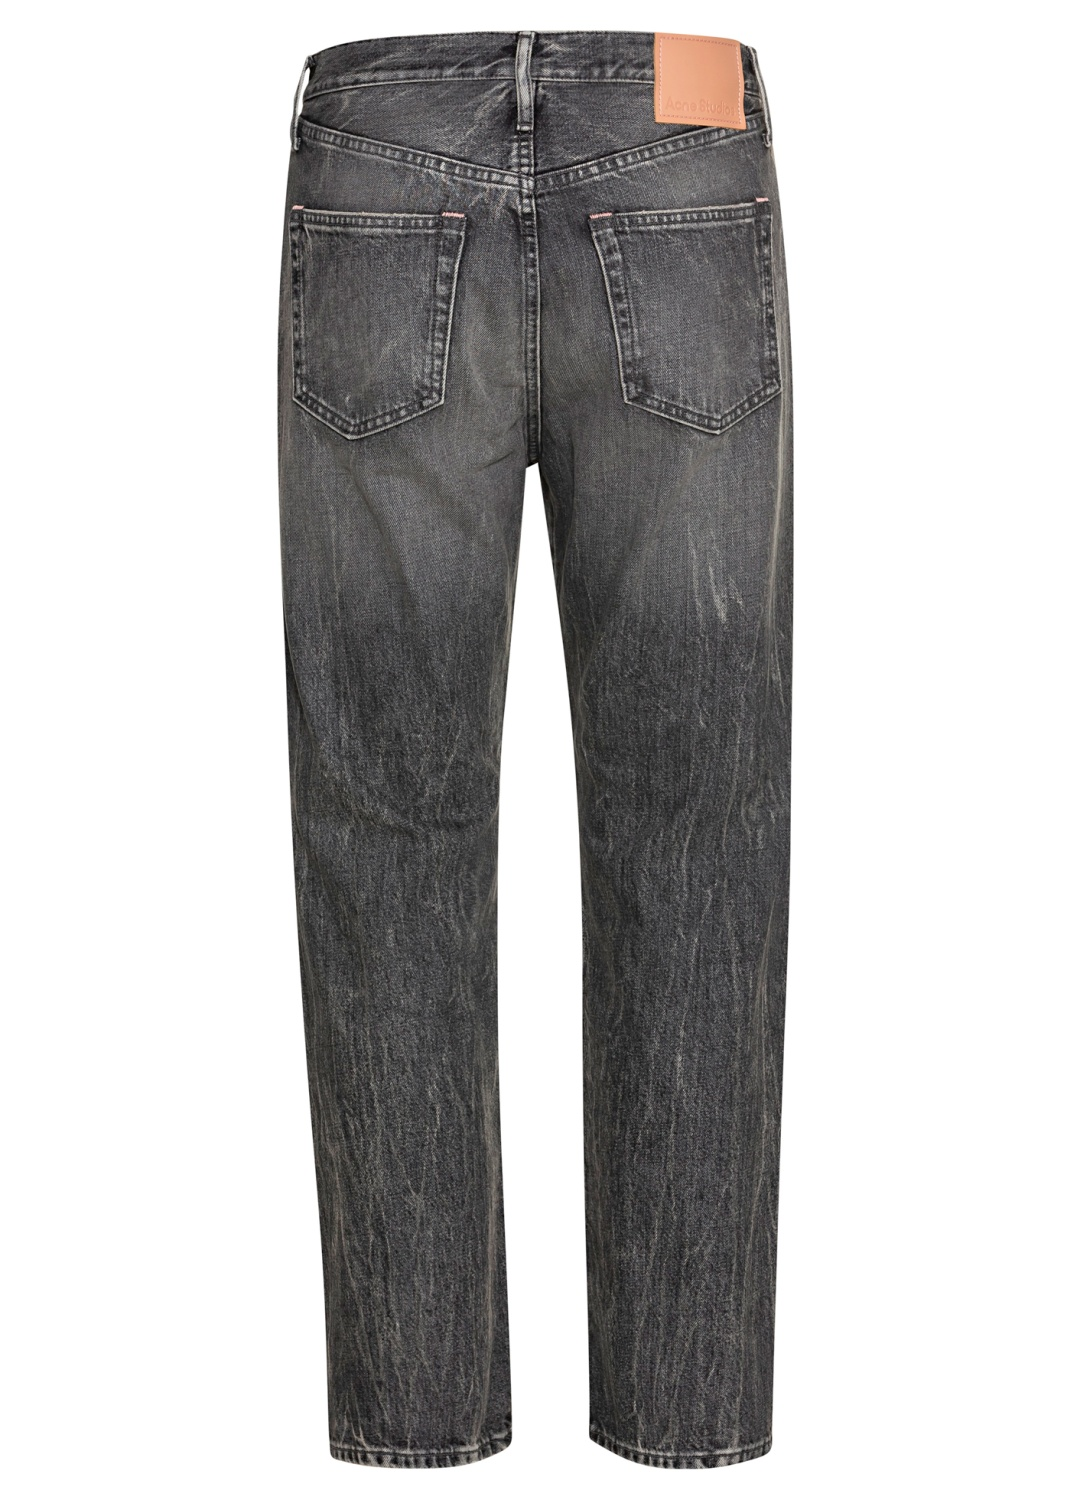 Acne Studios 2003 Washed out Grey image number 1